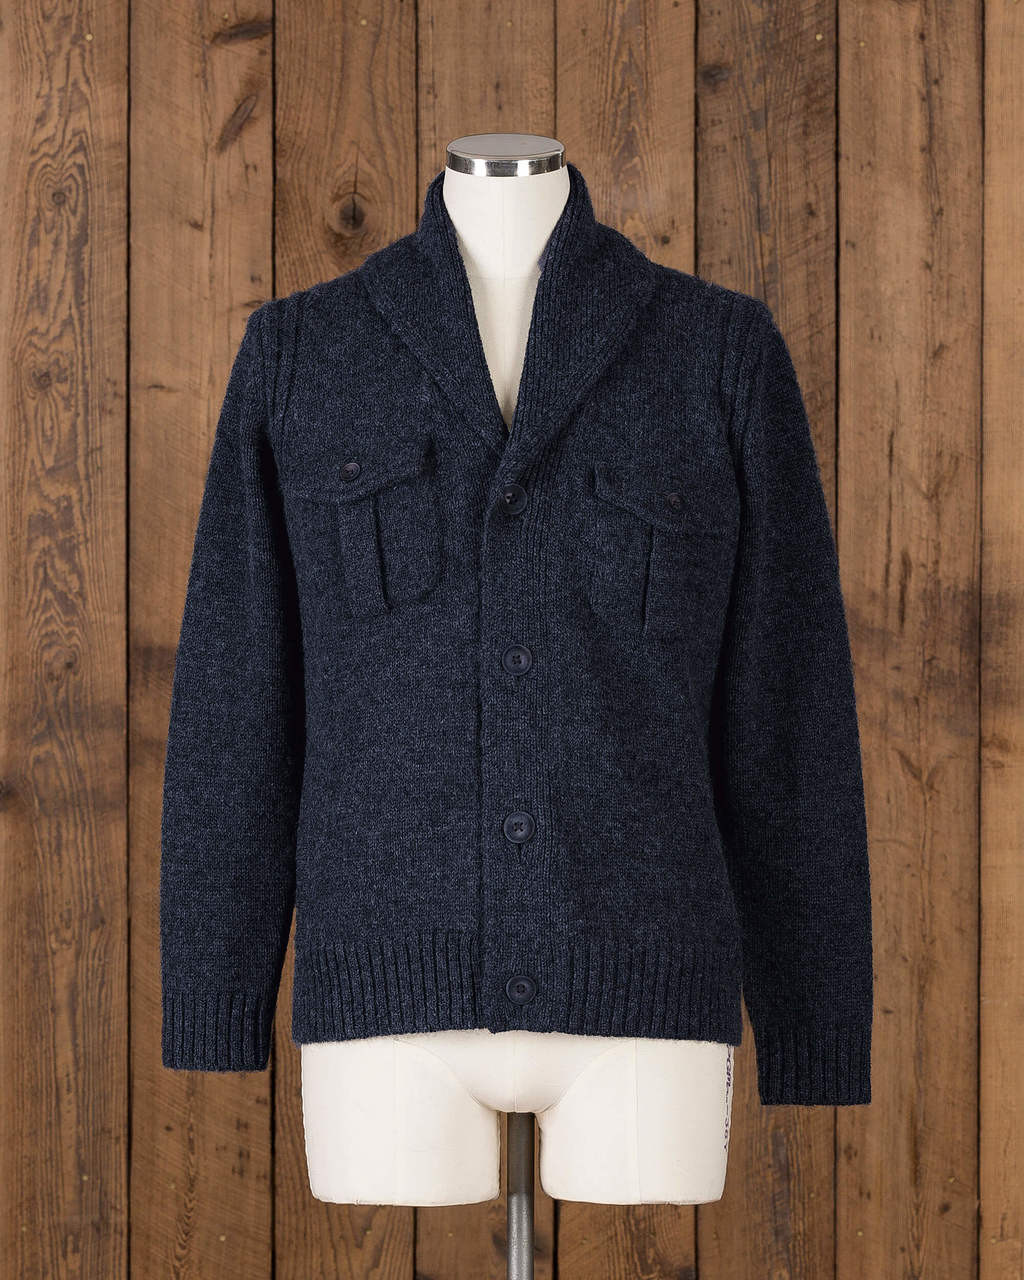 Alicia Adams Alpaca Milos Sweater , mens alpaca wool sweater, alpaca cardigan, fair trade made mens alpaca sweater, navy blue alpaca wool sweater